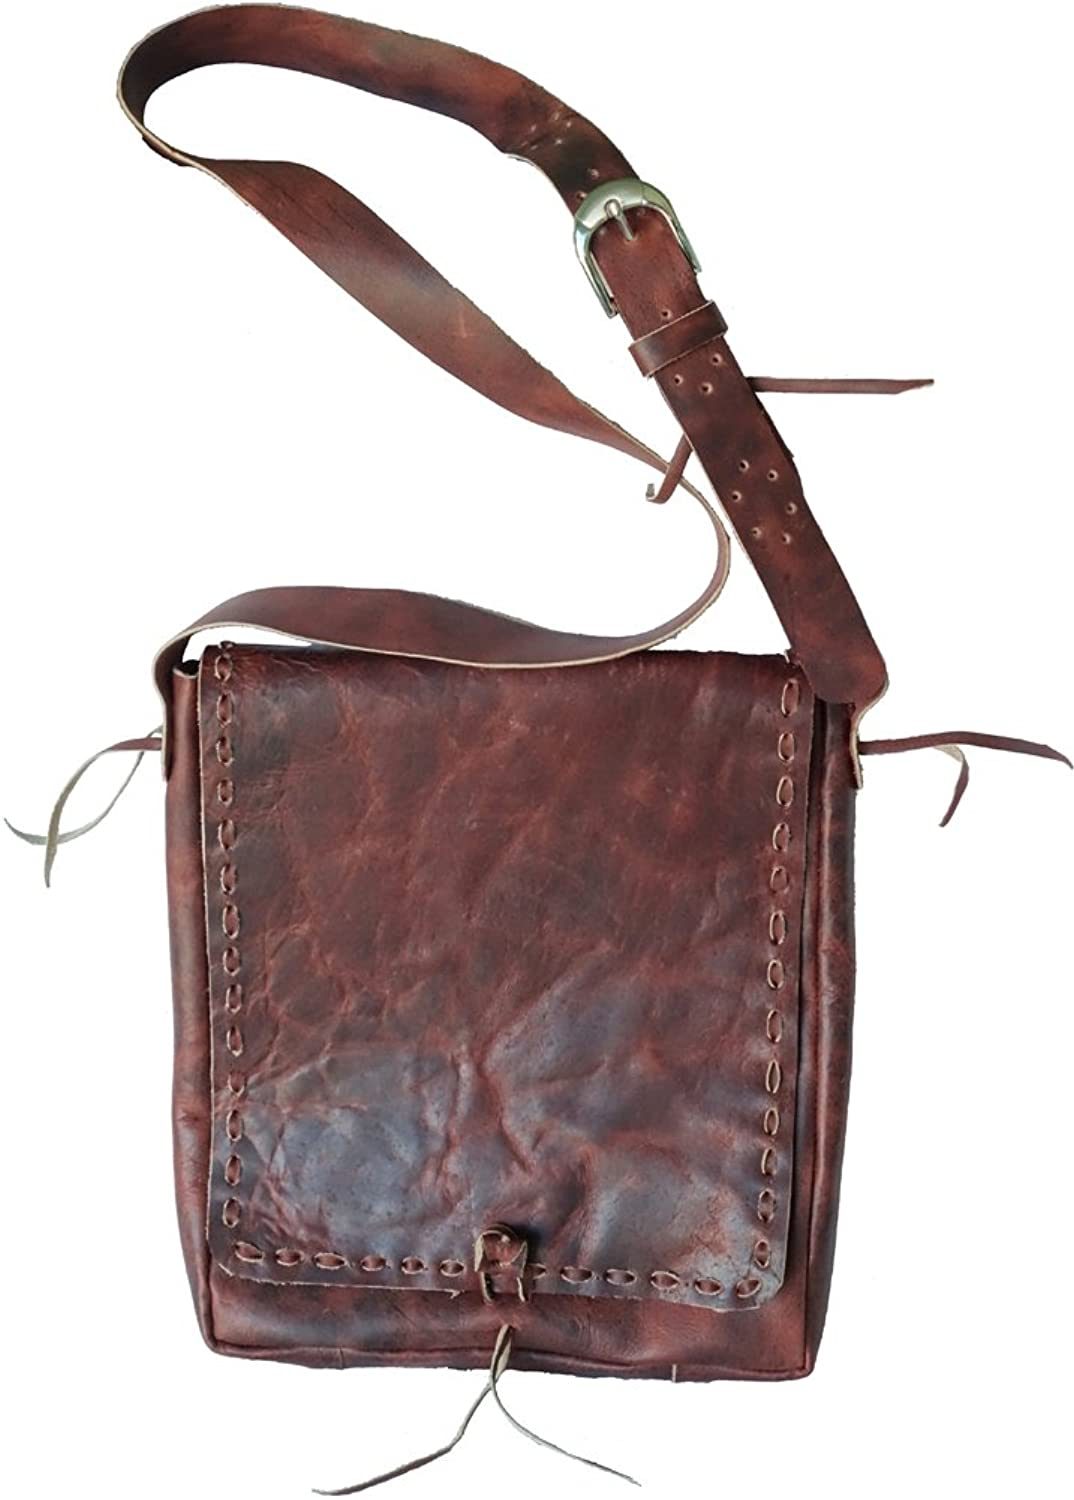 Atitlan Leather Handcrafted Leather Satchel Bag Brown